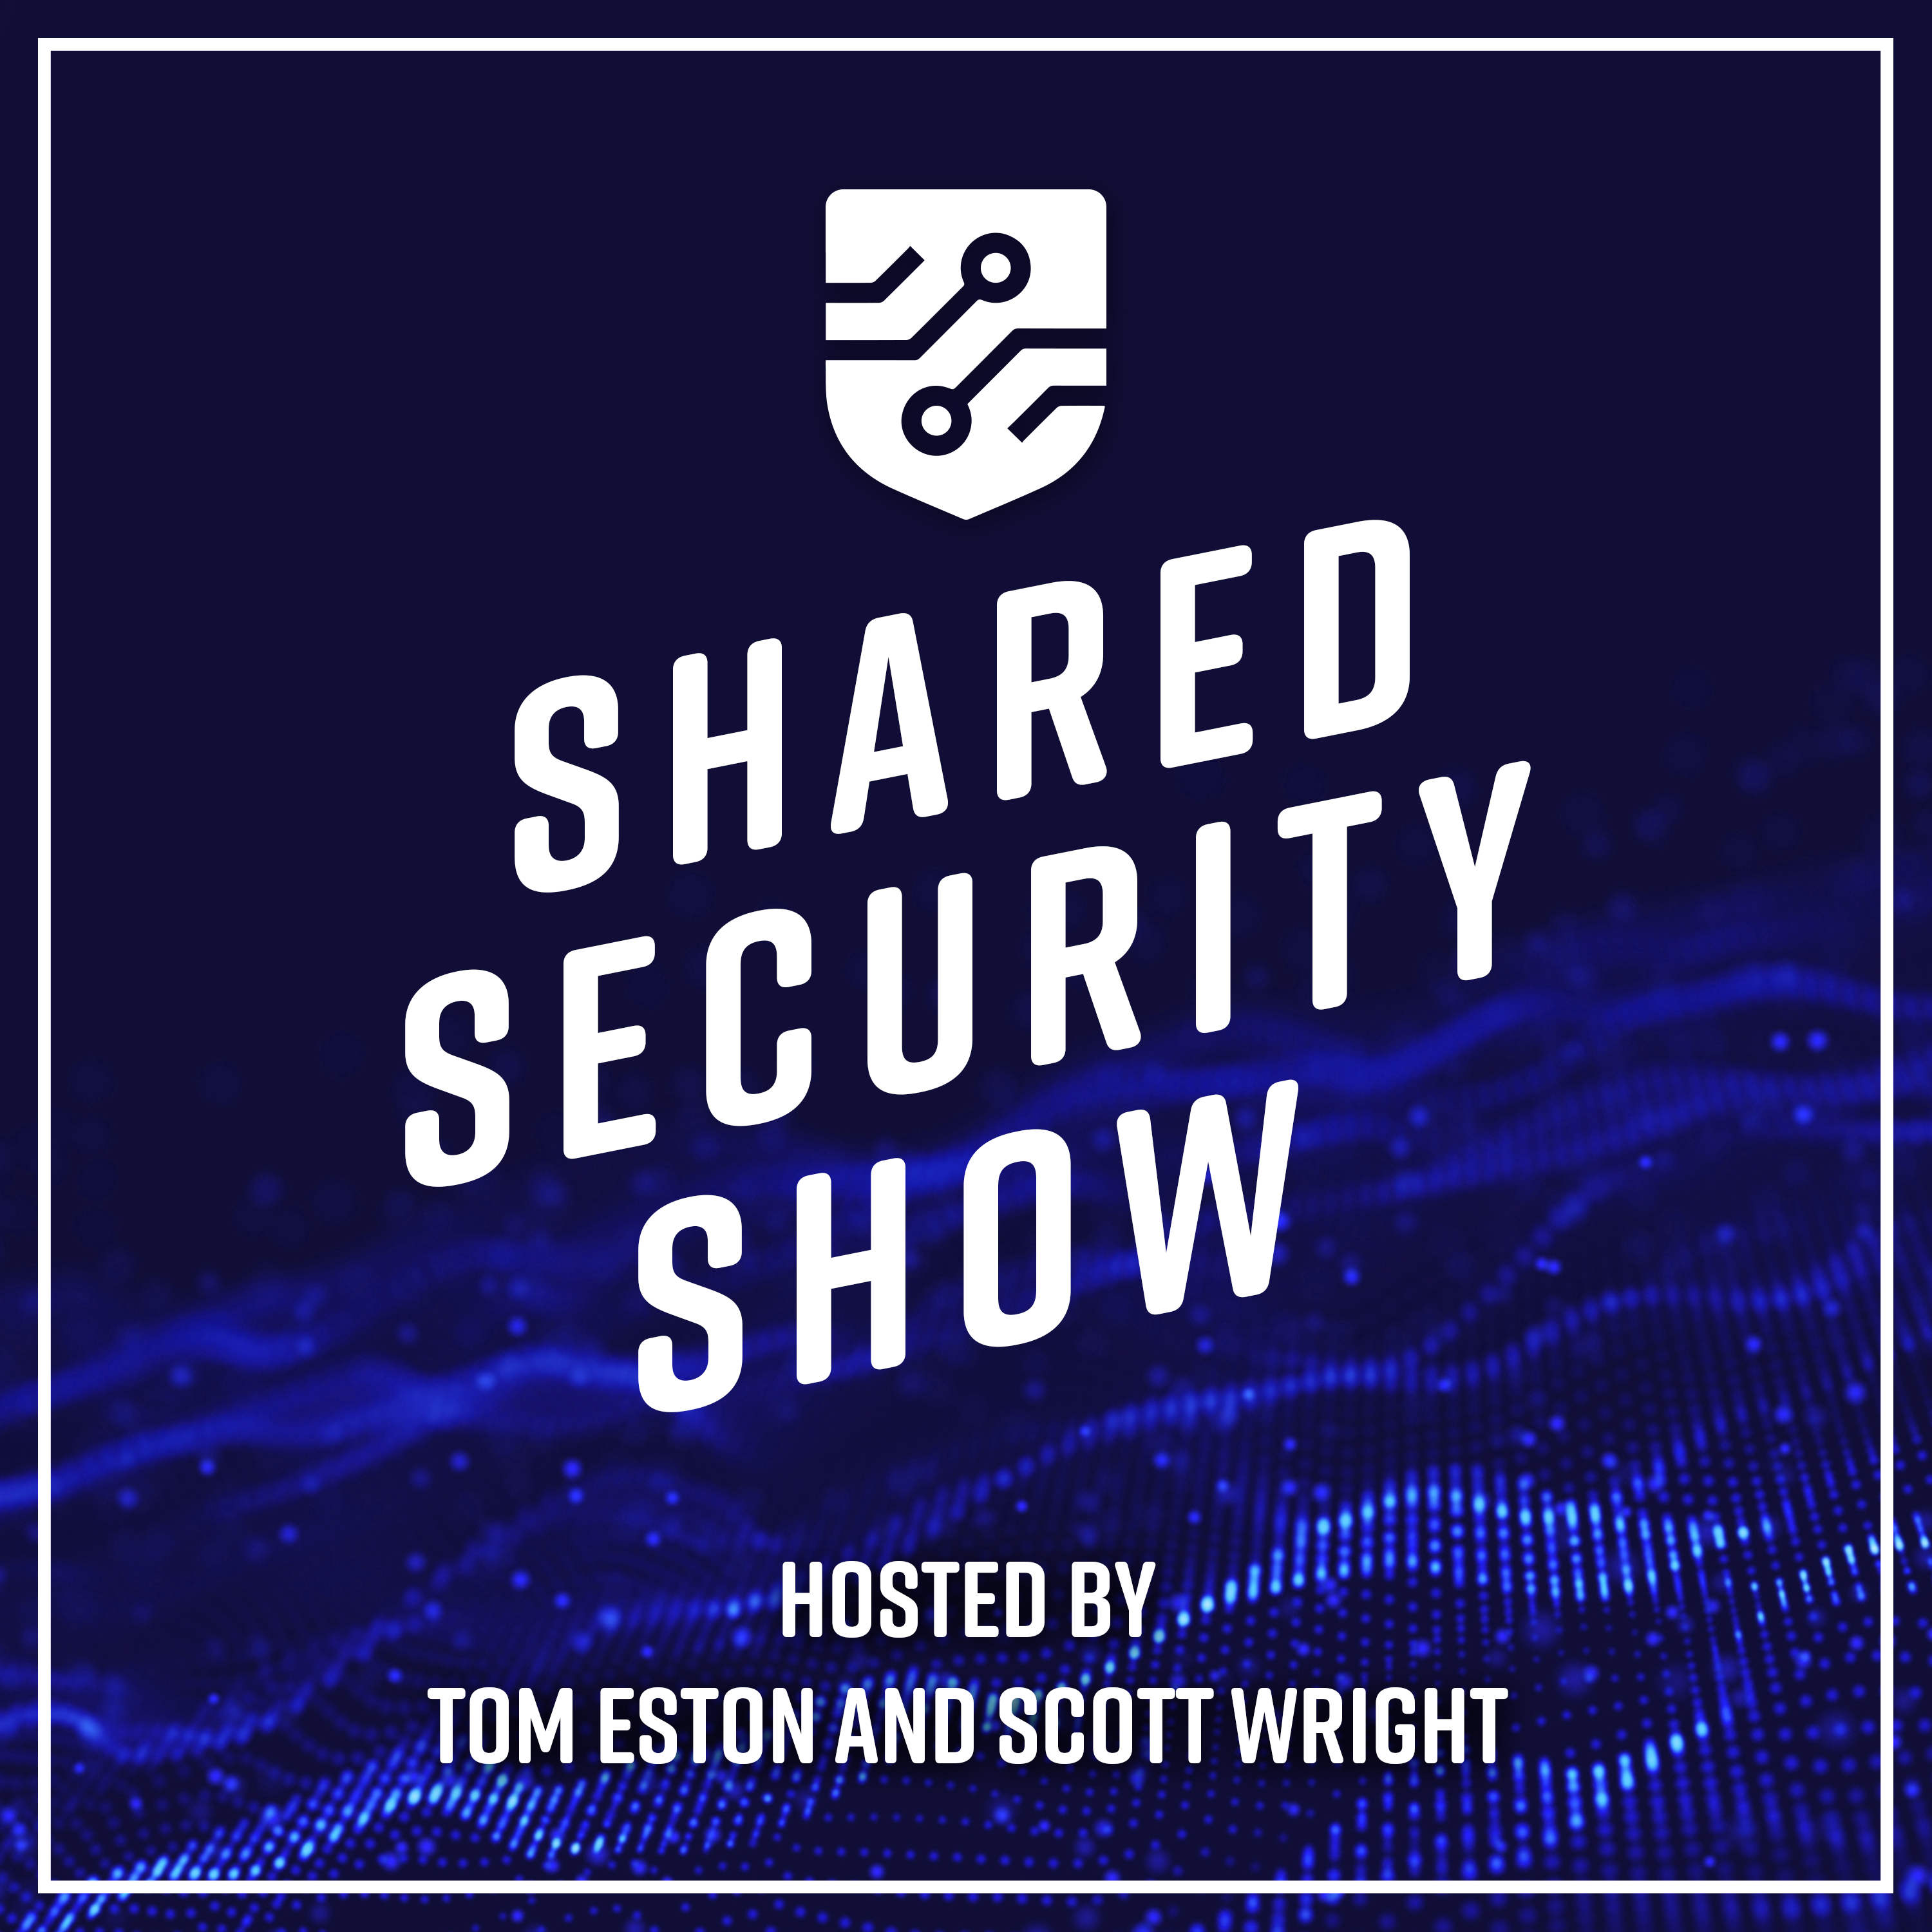 The Shared Security Show show art